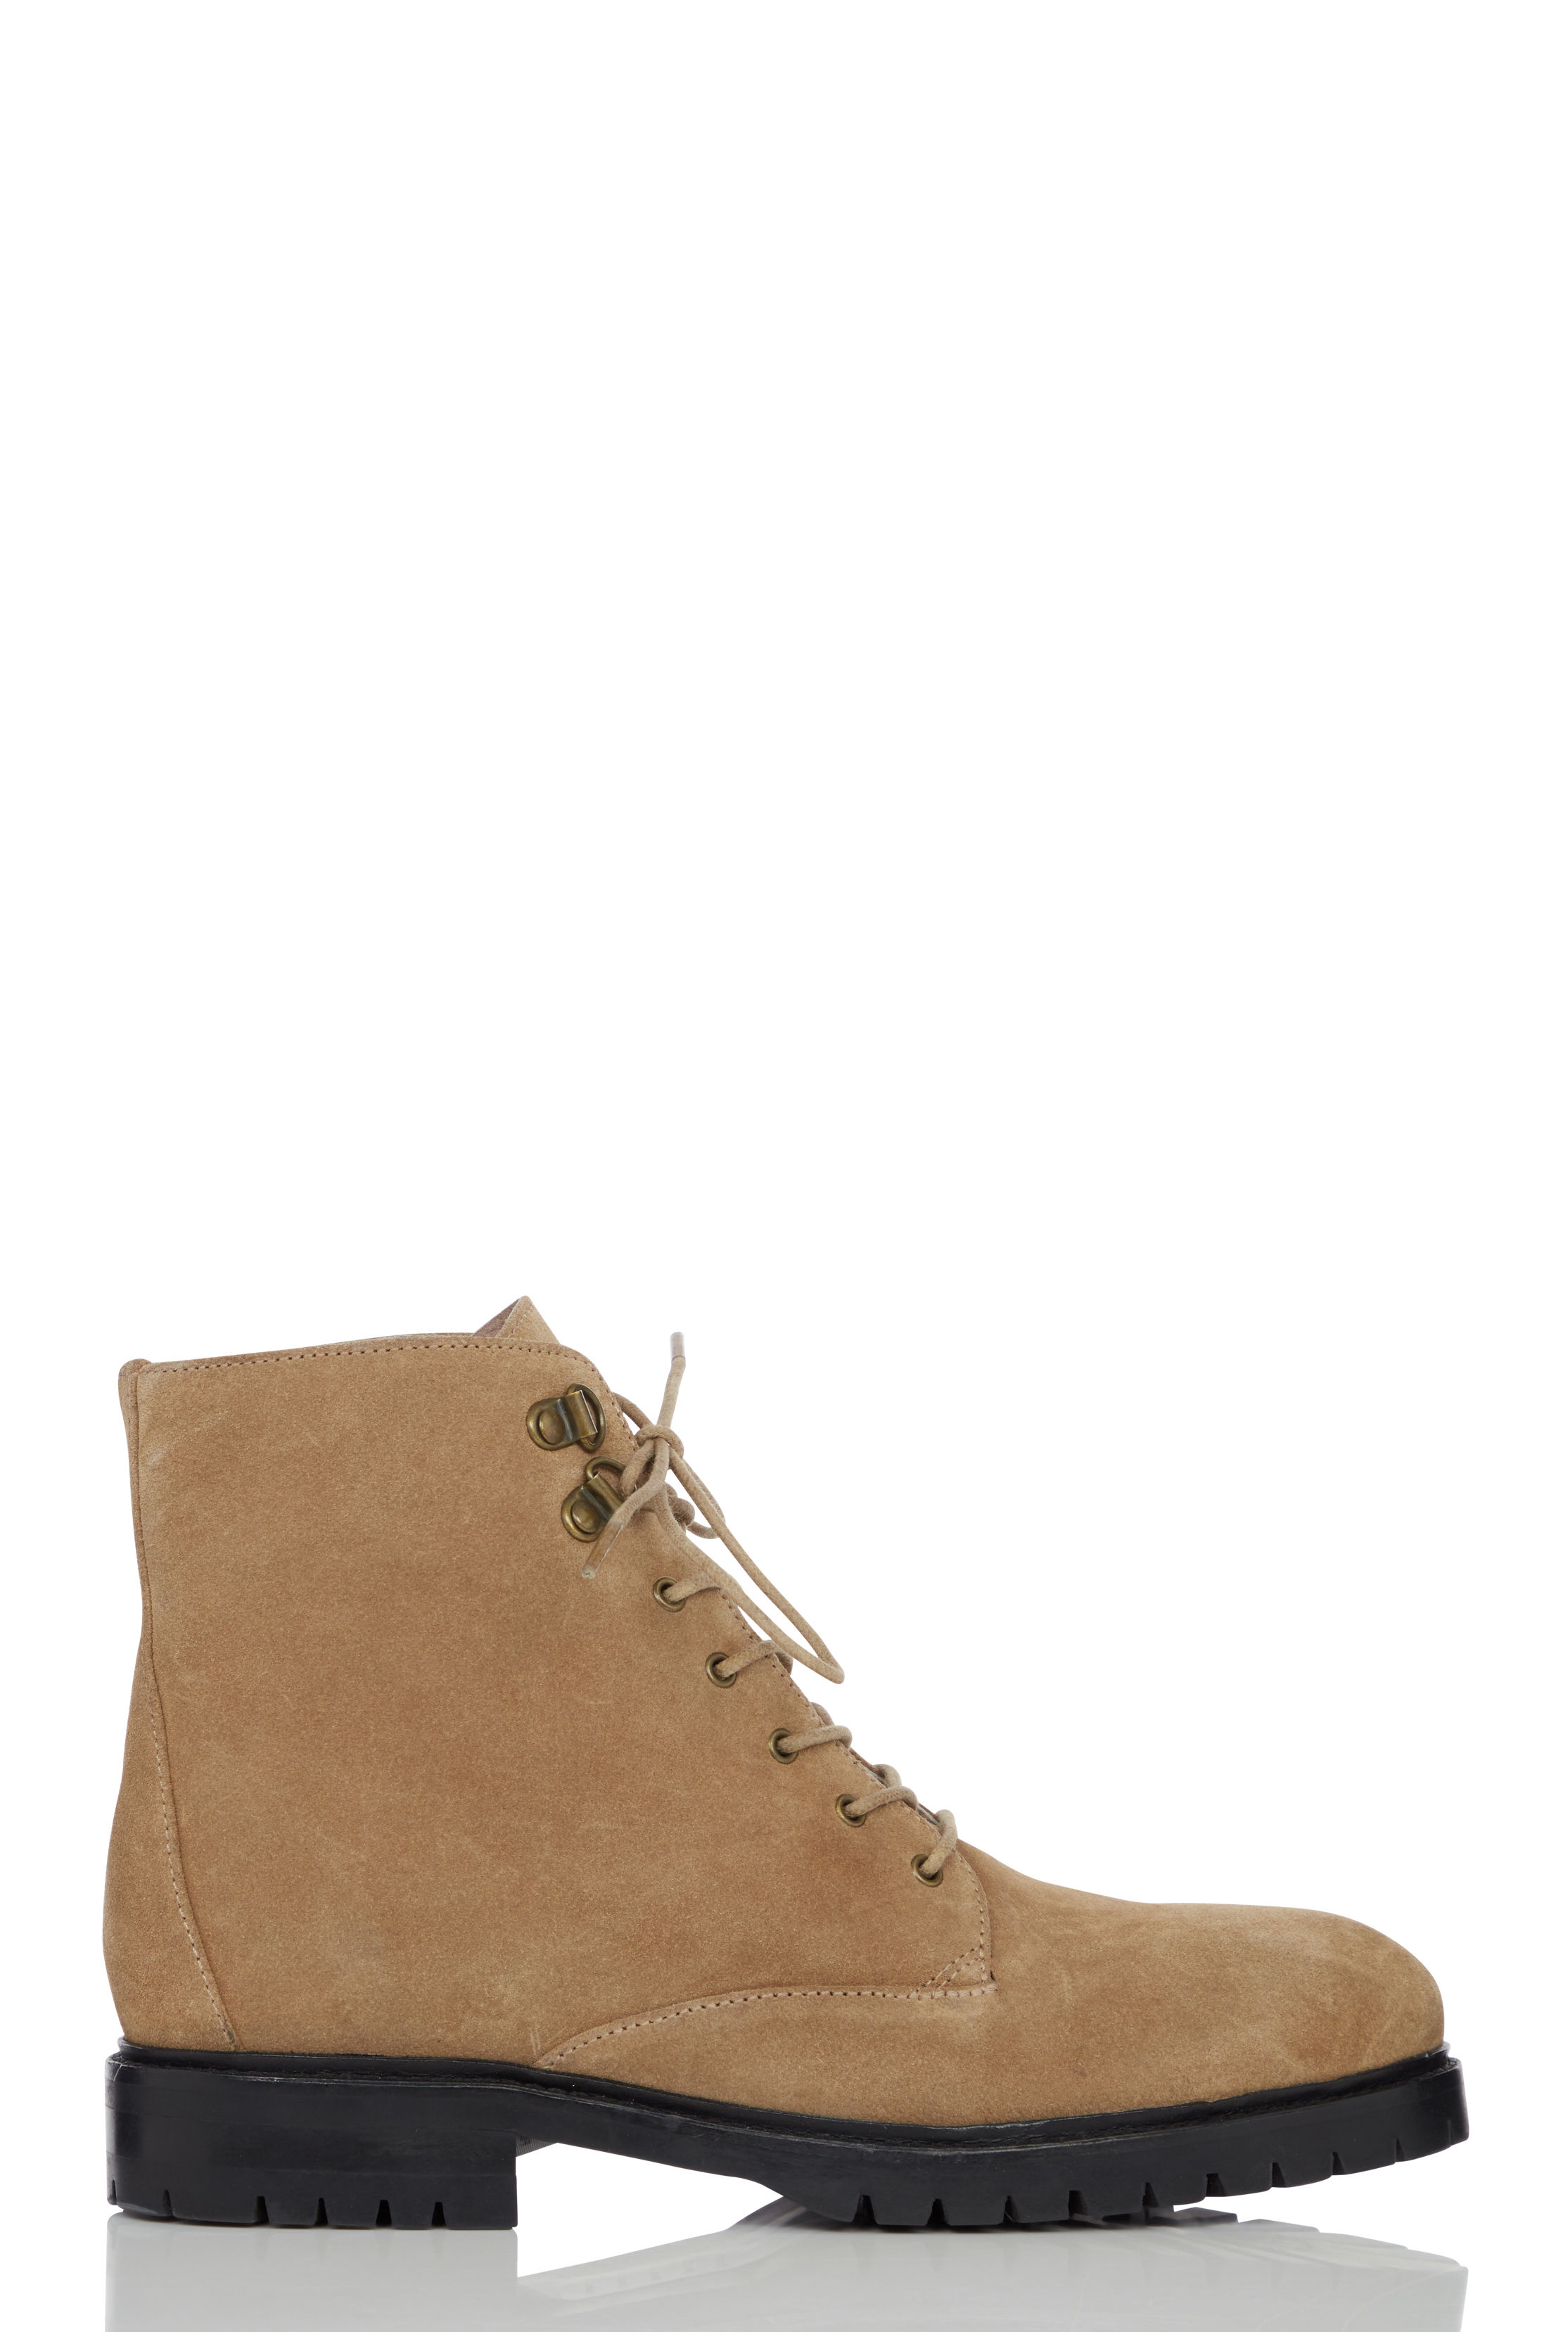 LTS Tan Joanne Leather Lace Up Boot